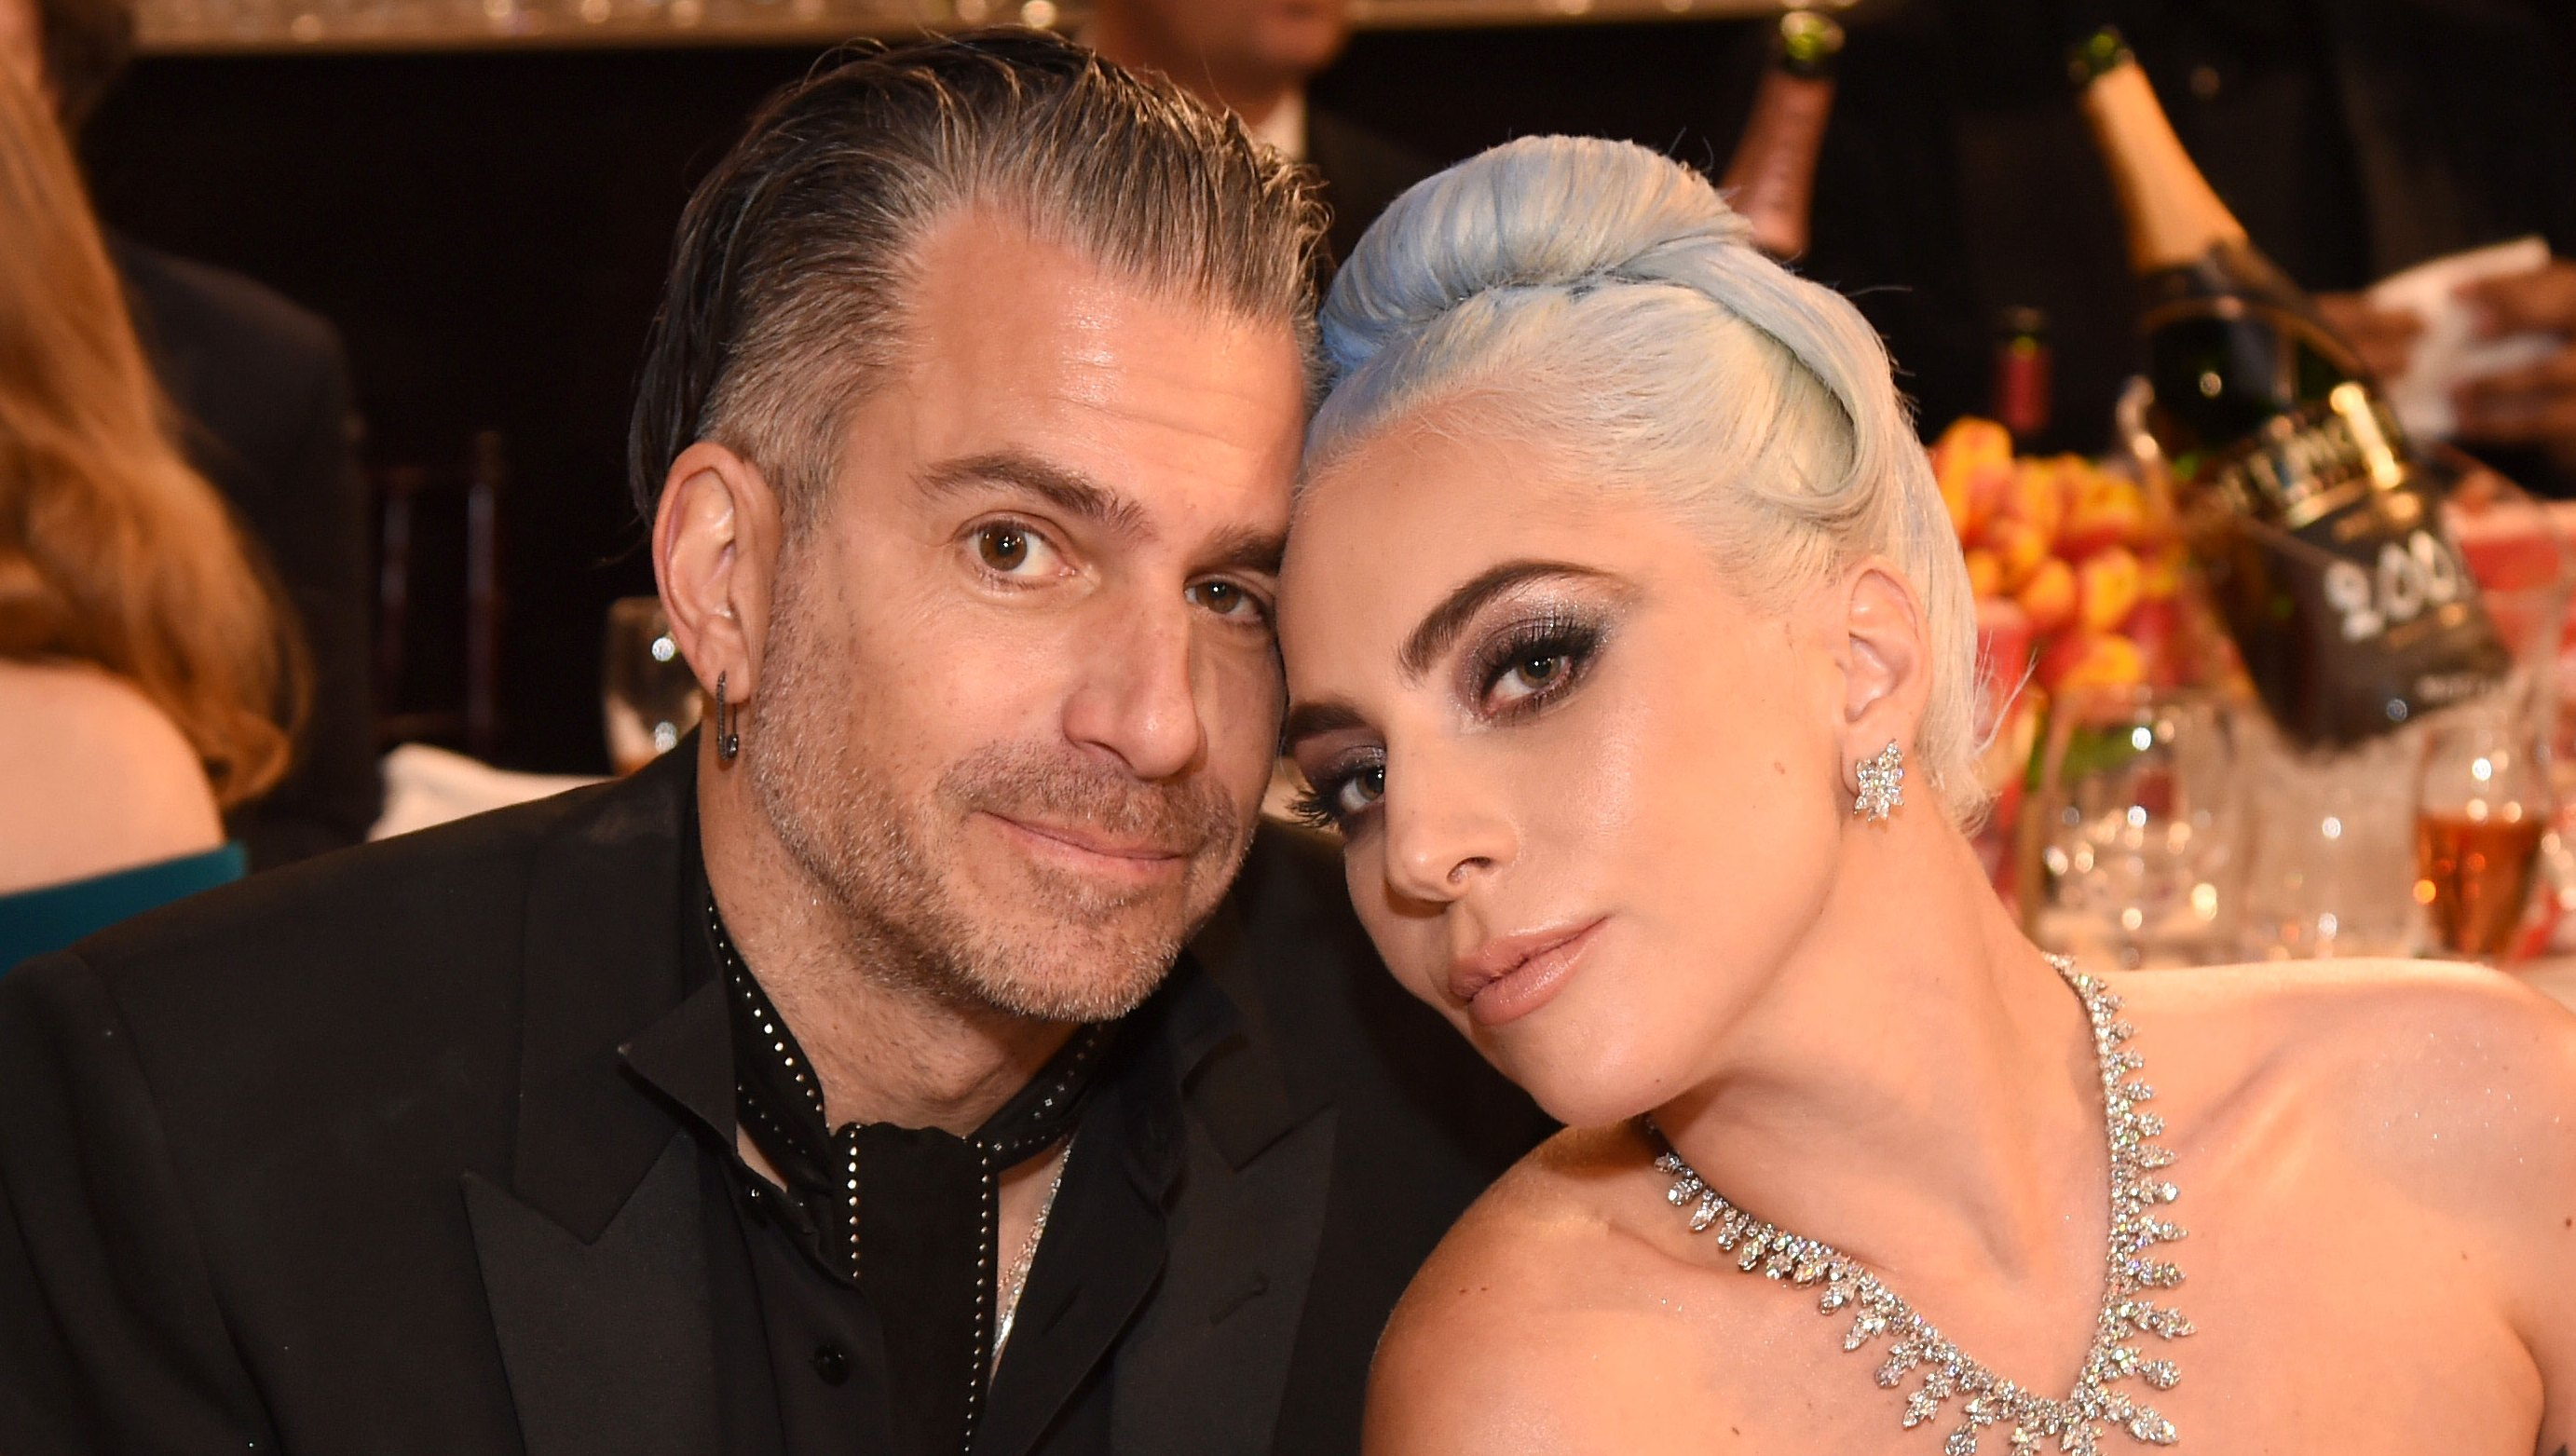 Lady Gaga Made a Heartbreaking Confession About Her Relationships and Success Before Christian Carino Split